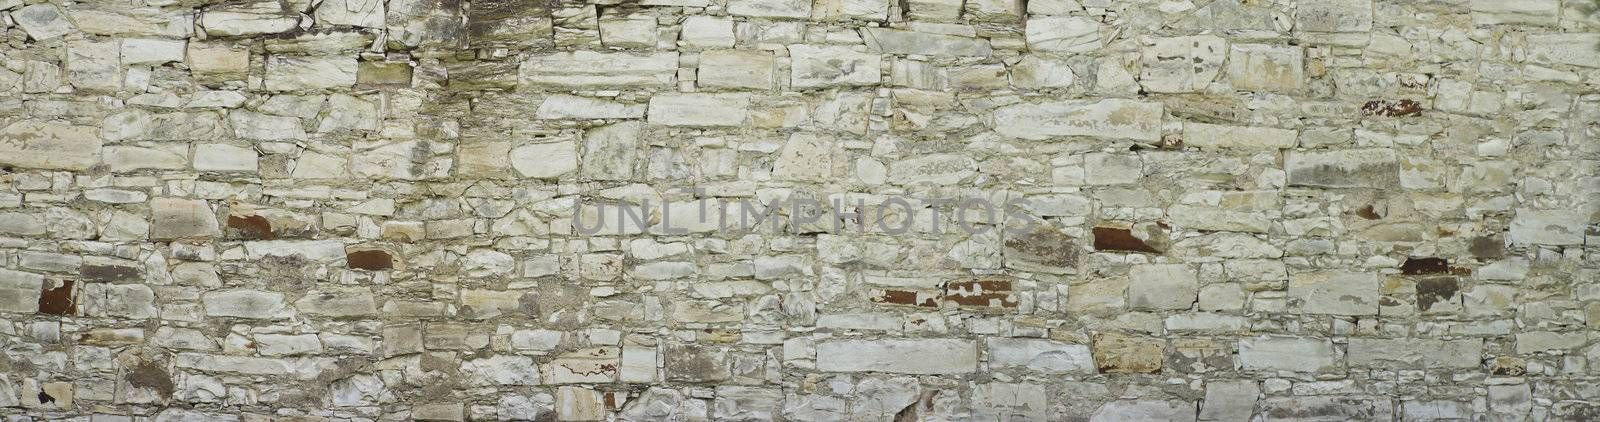 background or texture of a wide wall